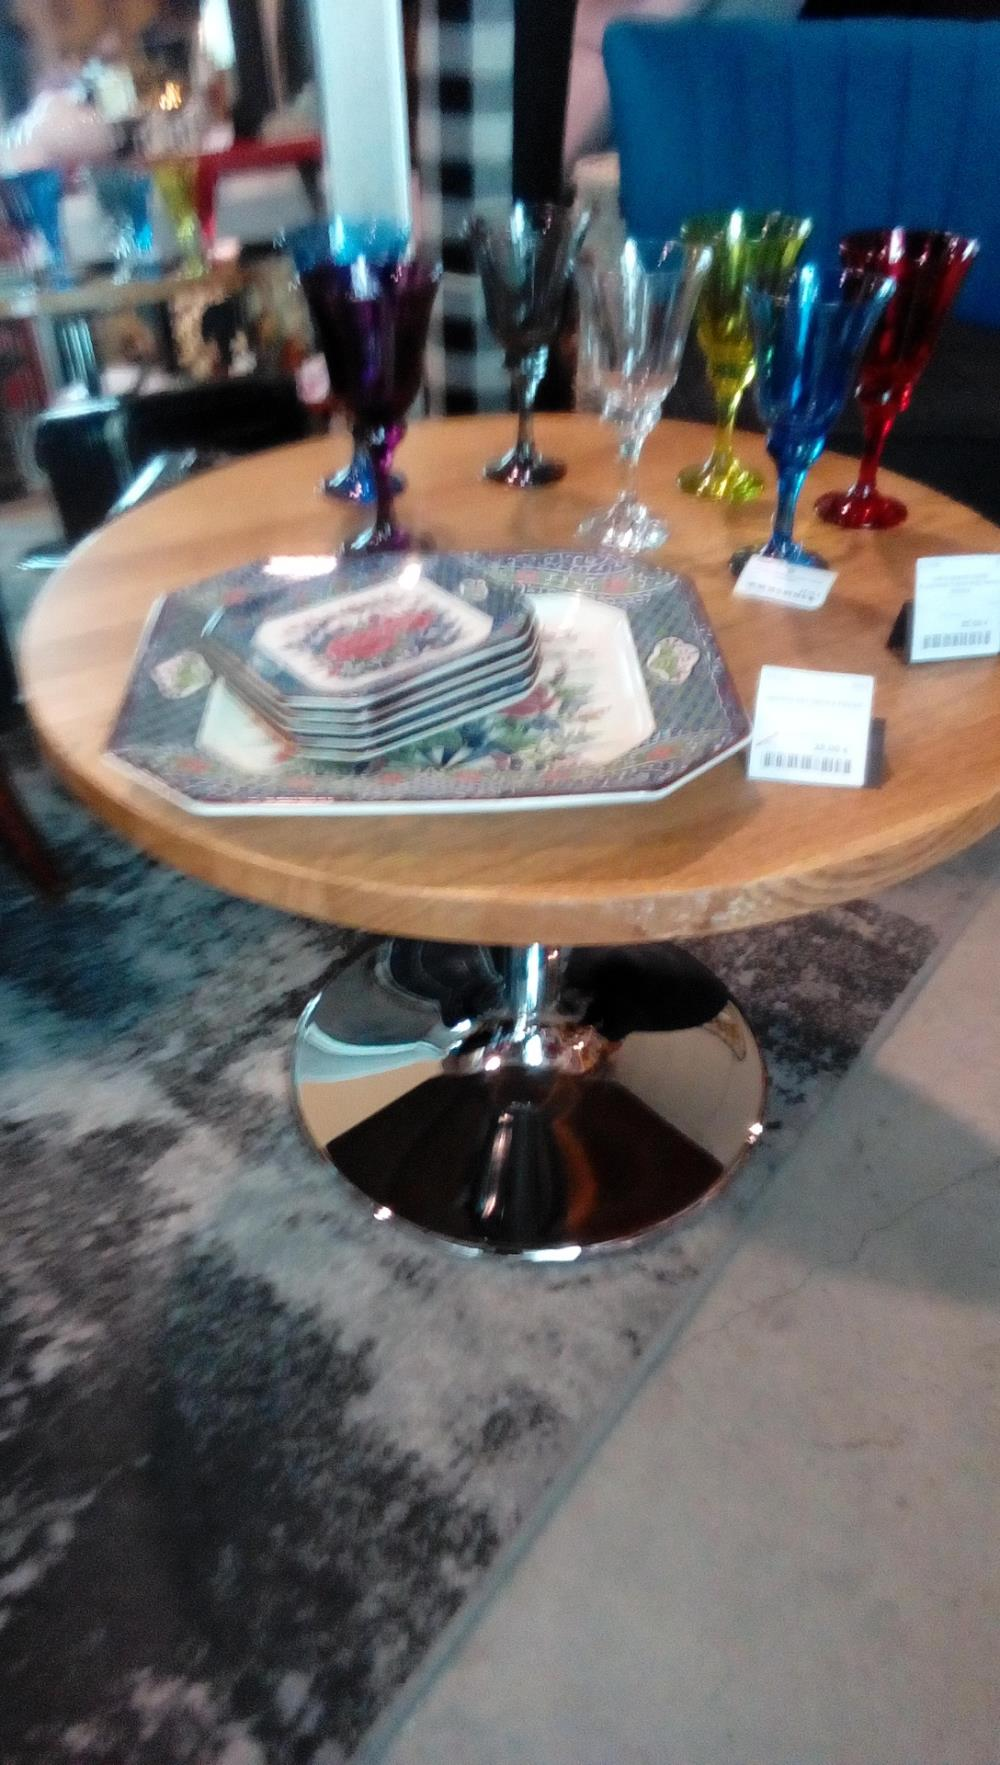 TABLE BASSE RONDE PLAQUAGE CHENE PIED METAL DESIGN